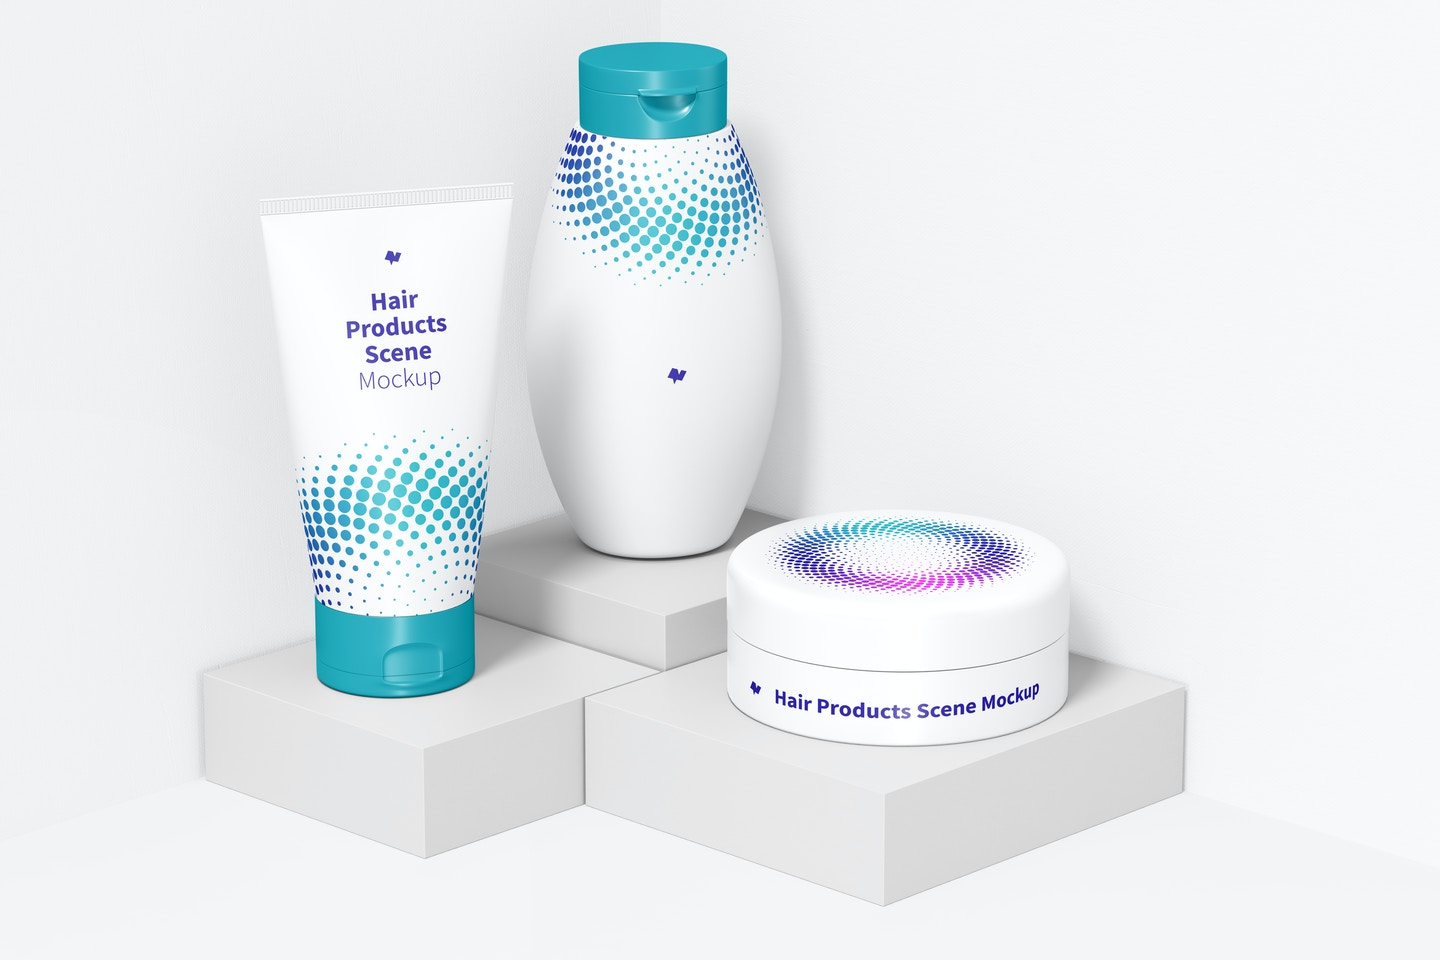 Hair Products Scene Mockup, Perspective